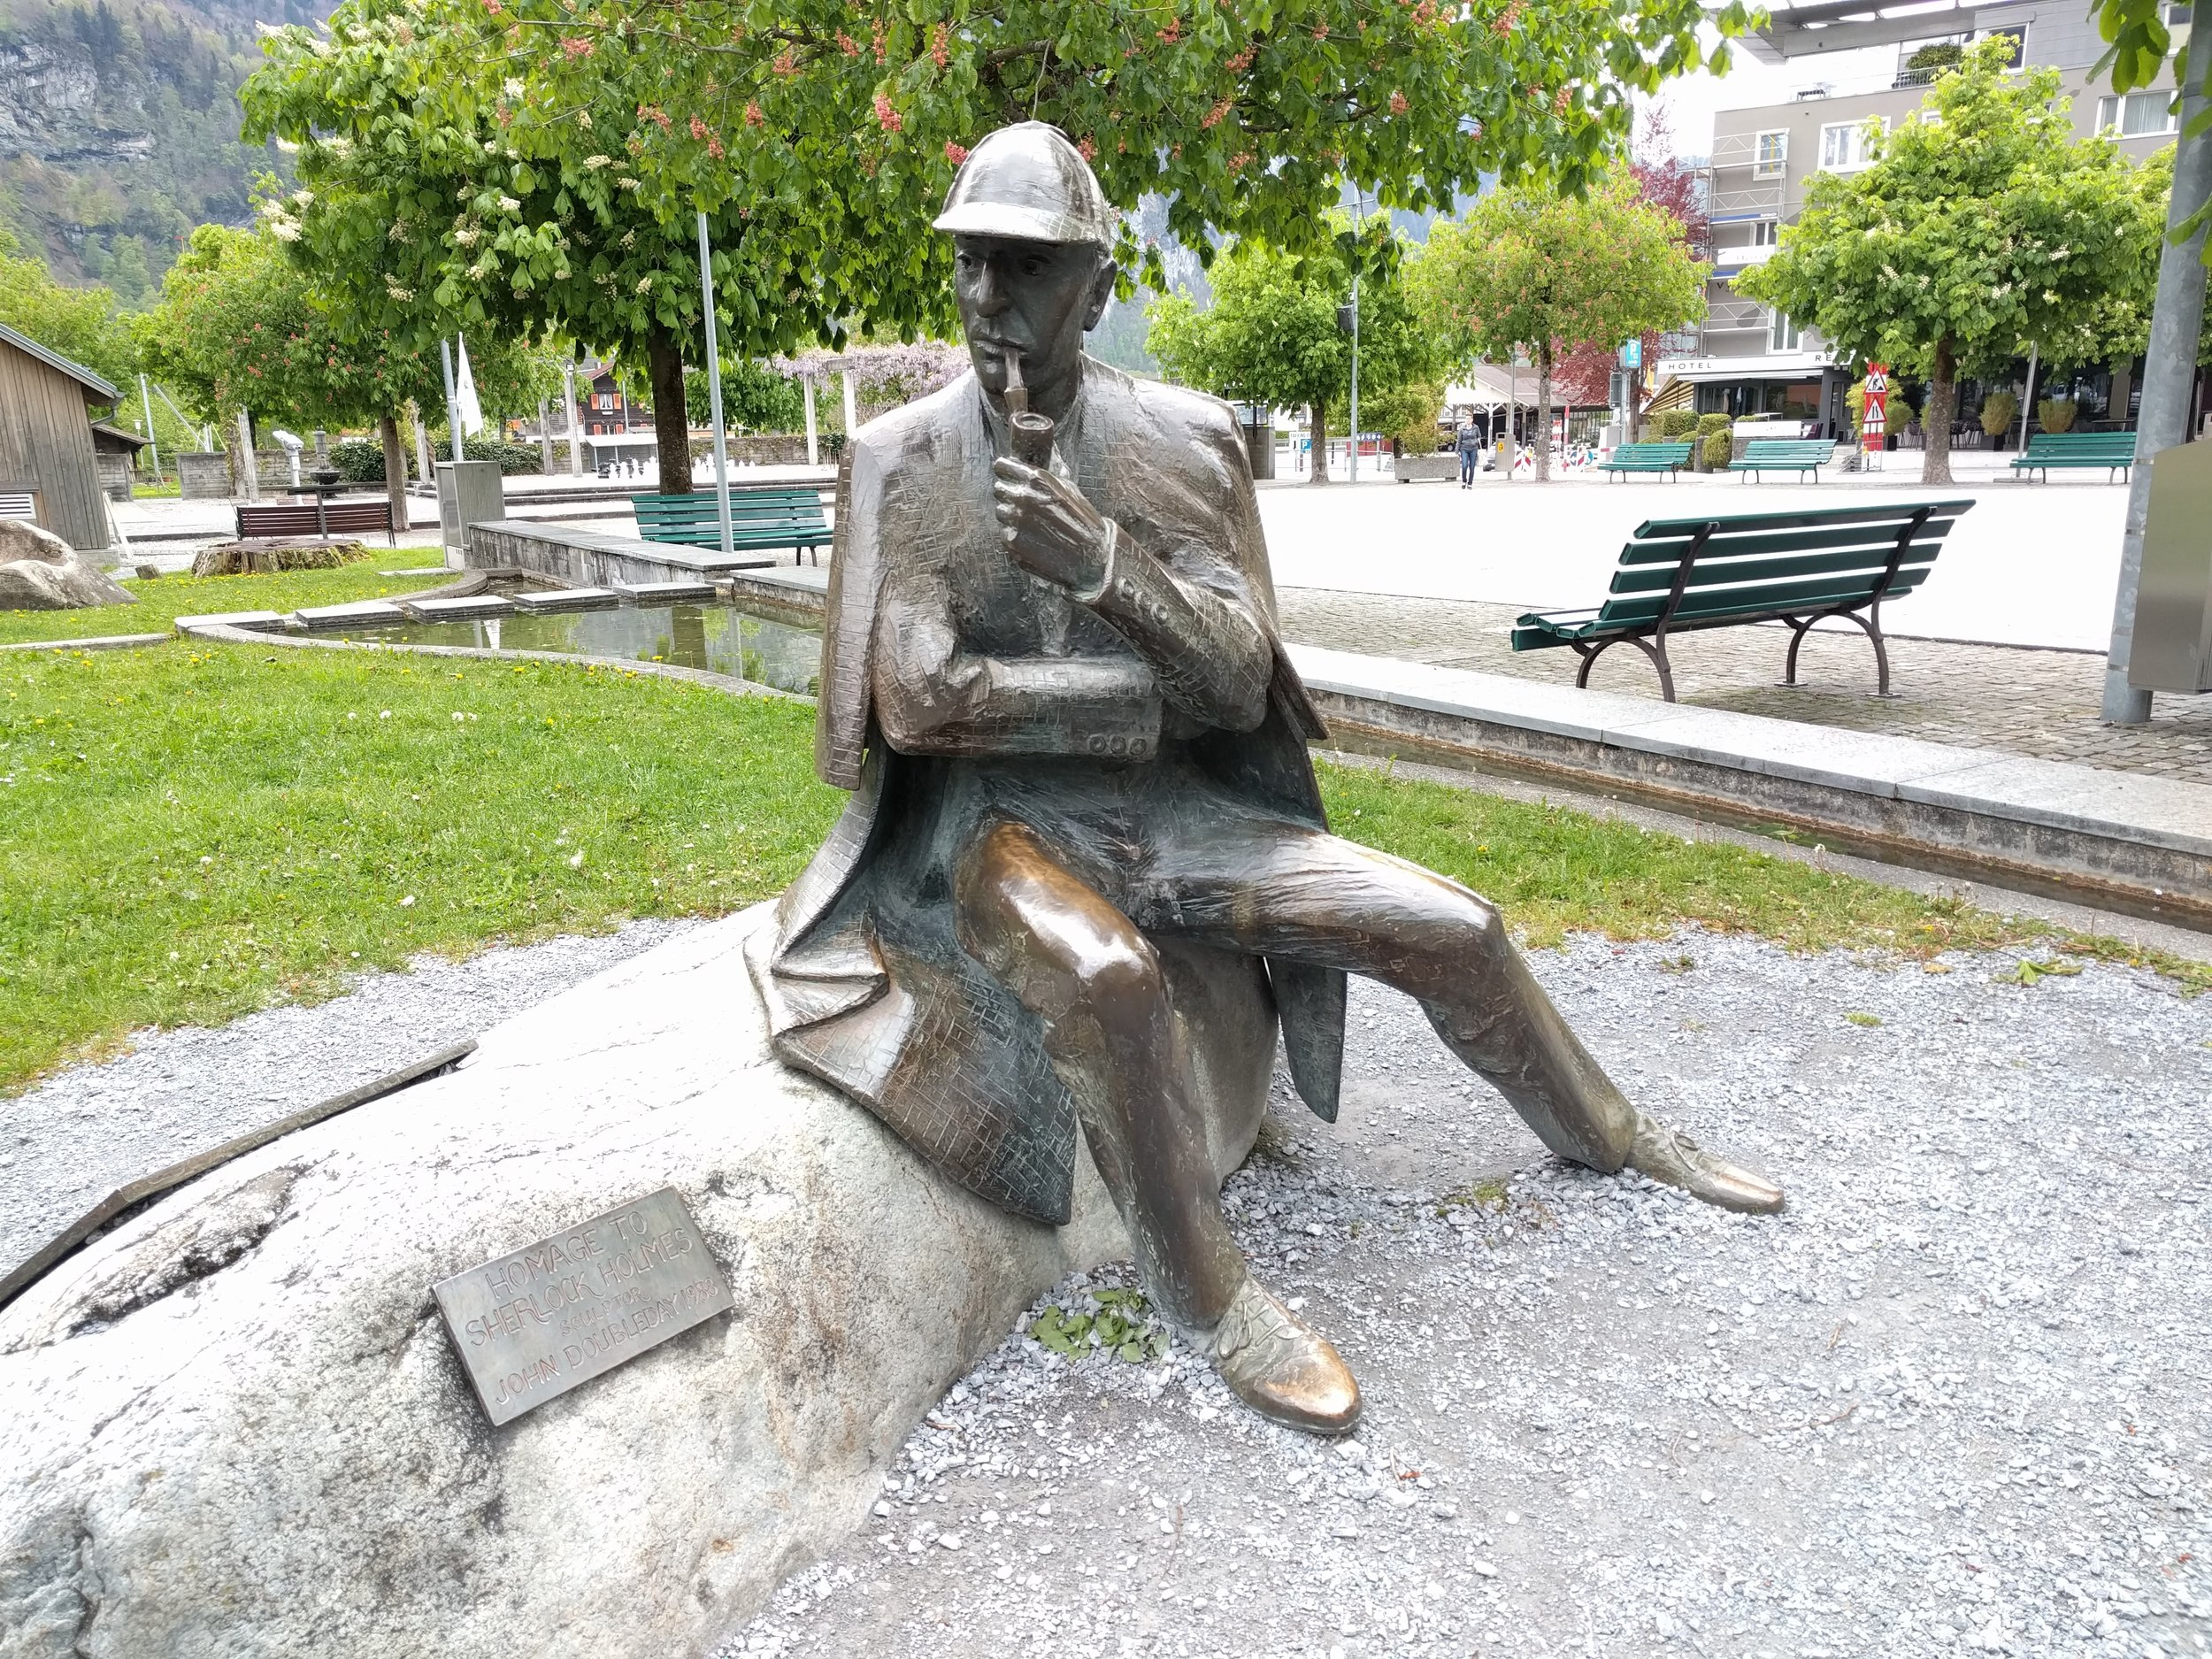 This is Sherlock Holmes. He was sculpted by John Doubleday, who also made one for London. But this one came first, in 1991. So take that, London, you were second. Also, this is the only statue of a seated Holmes, if that matters to you. It does not matter to me, other than that it's easier to take selfies with this one. Which I did not do. Yet.